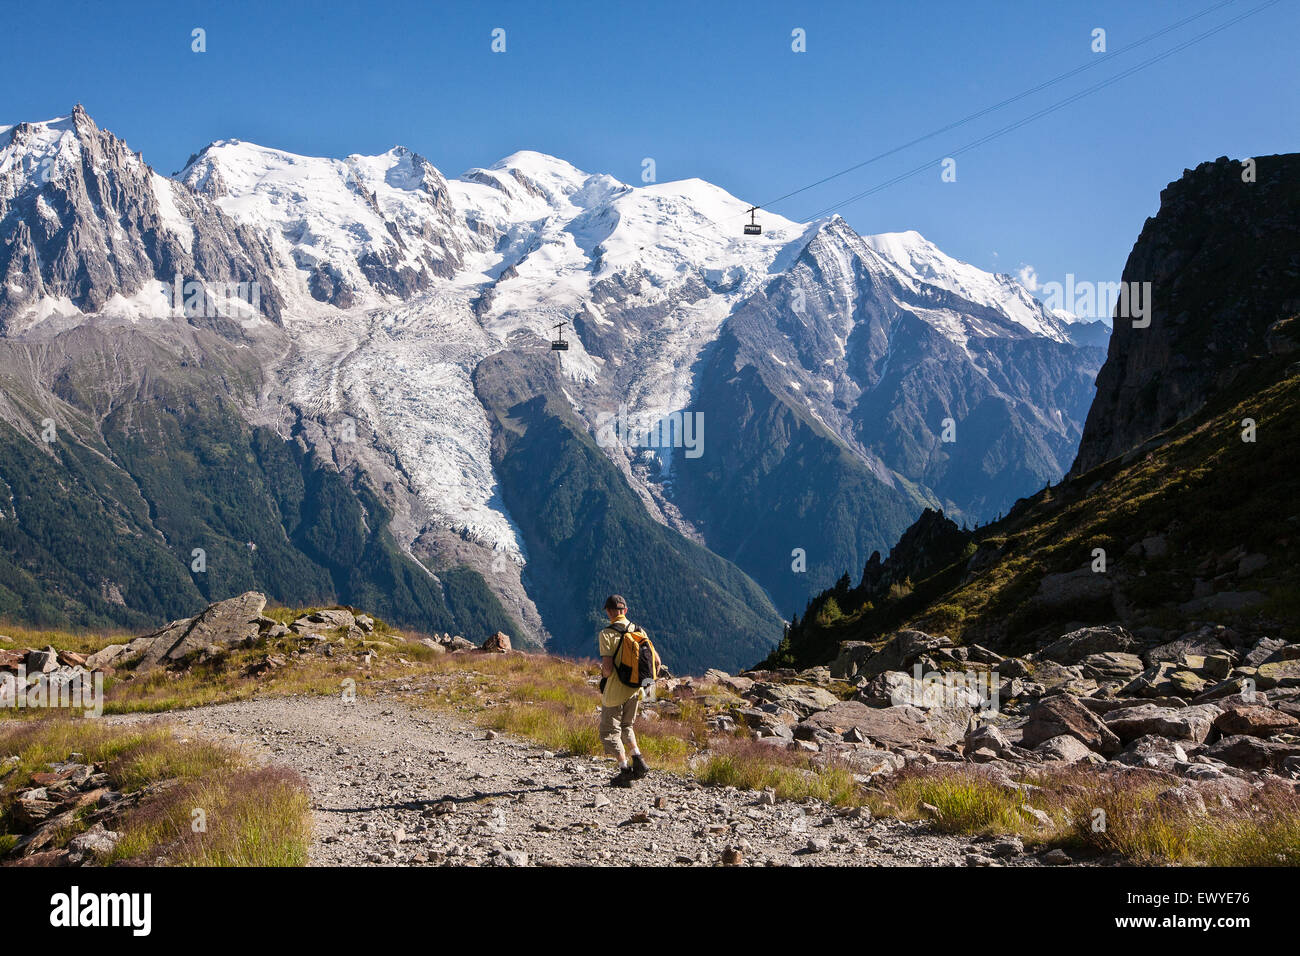 Hiking above Chamonix Mont Blanc valley, France. Mont Blanc mountain in background. Stock Photo